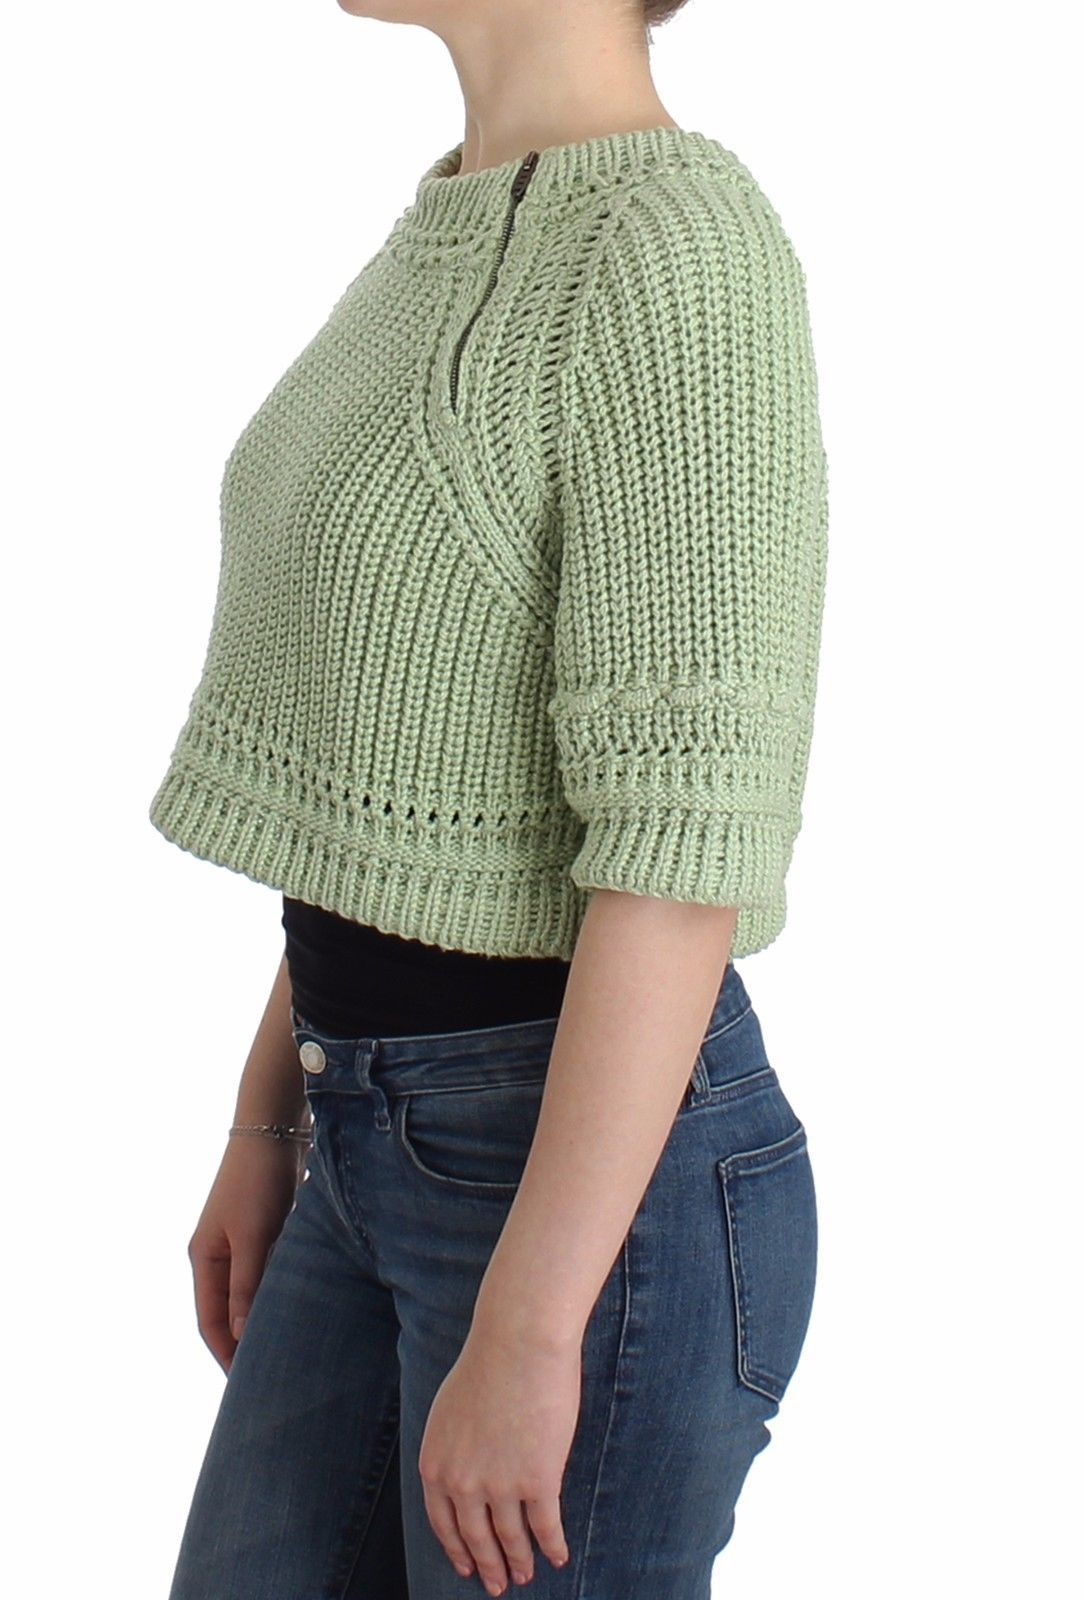 Ermanno Scervino Green Cropped Knit Sweater Knitted Jumper